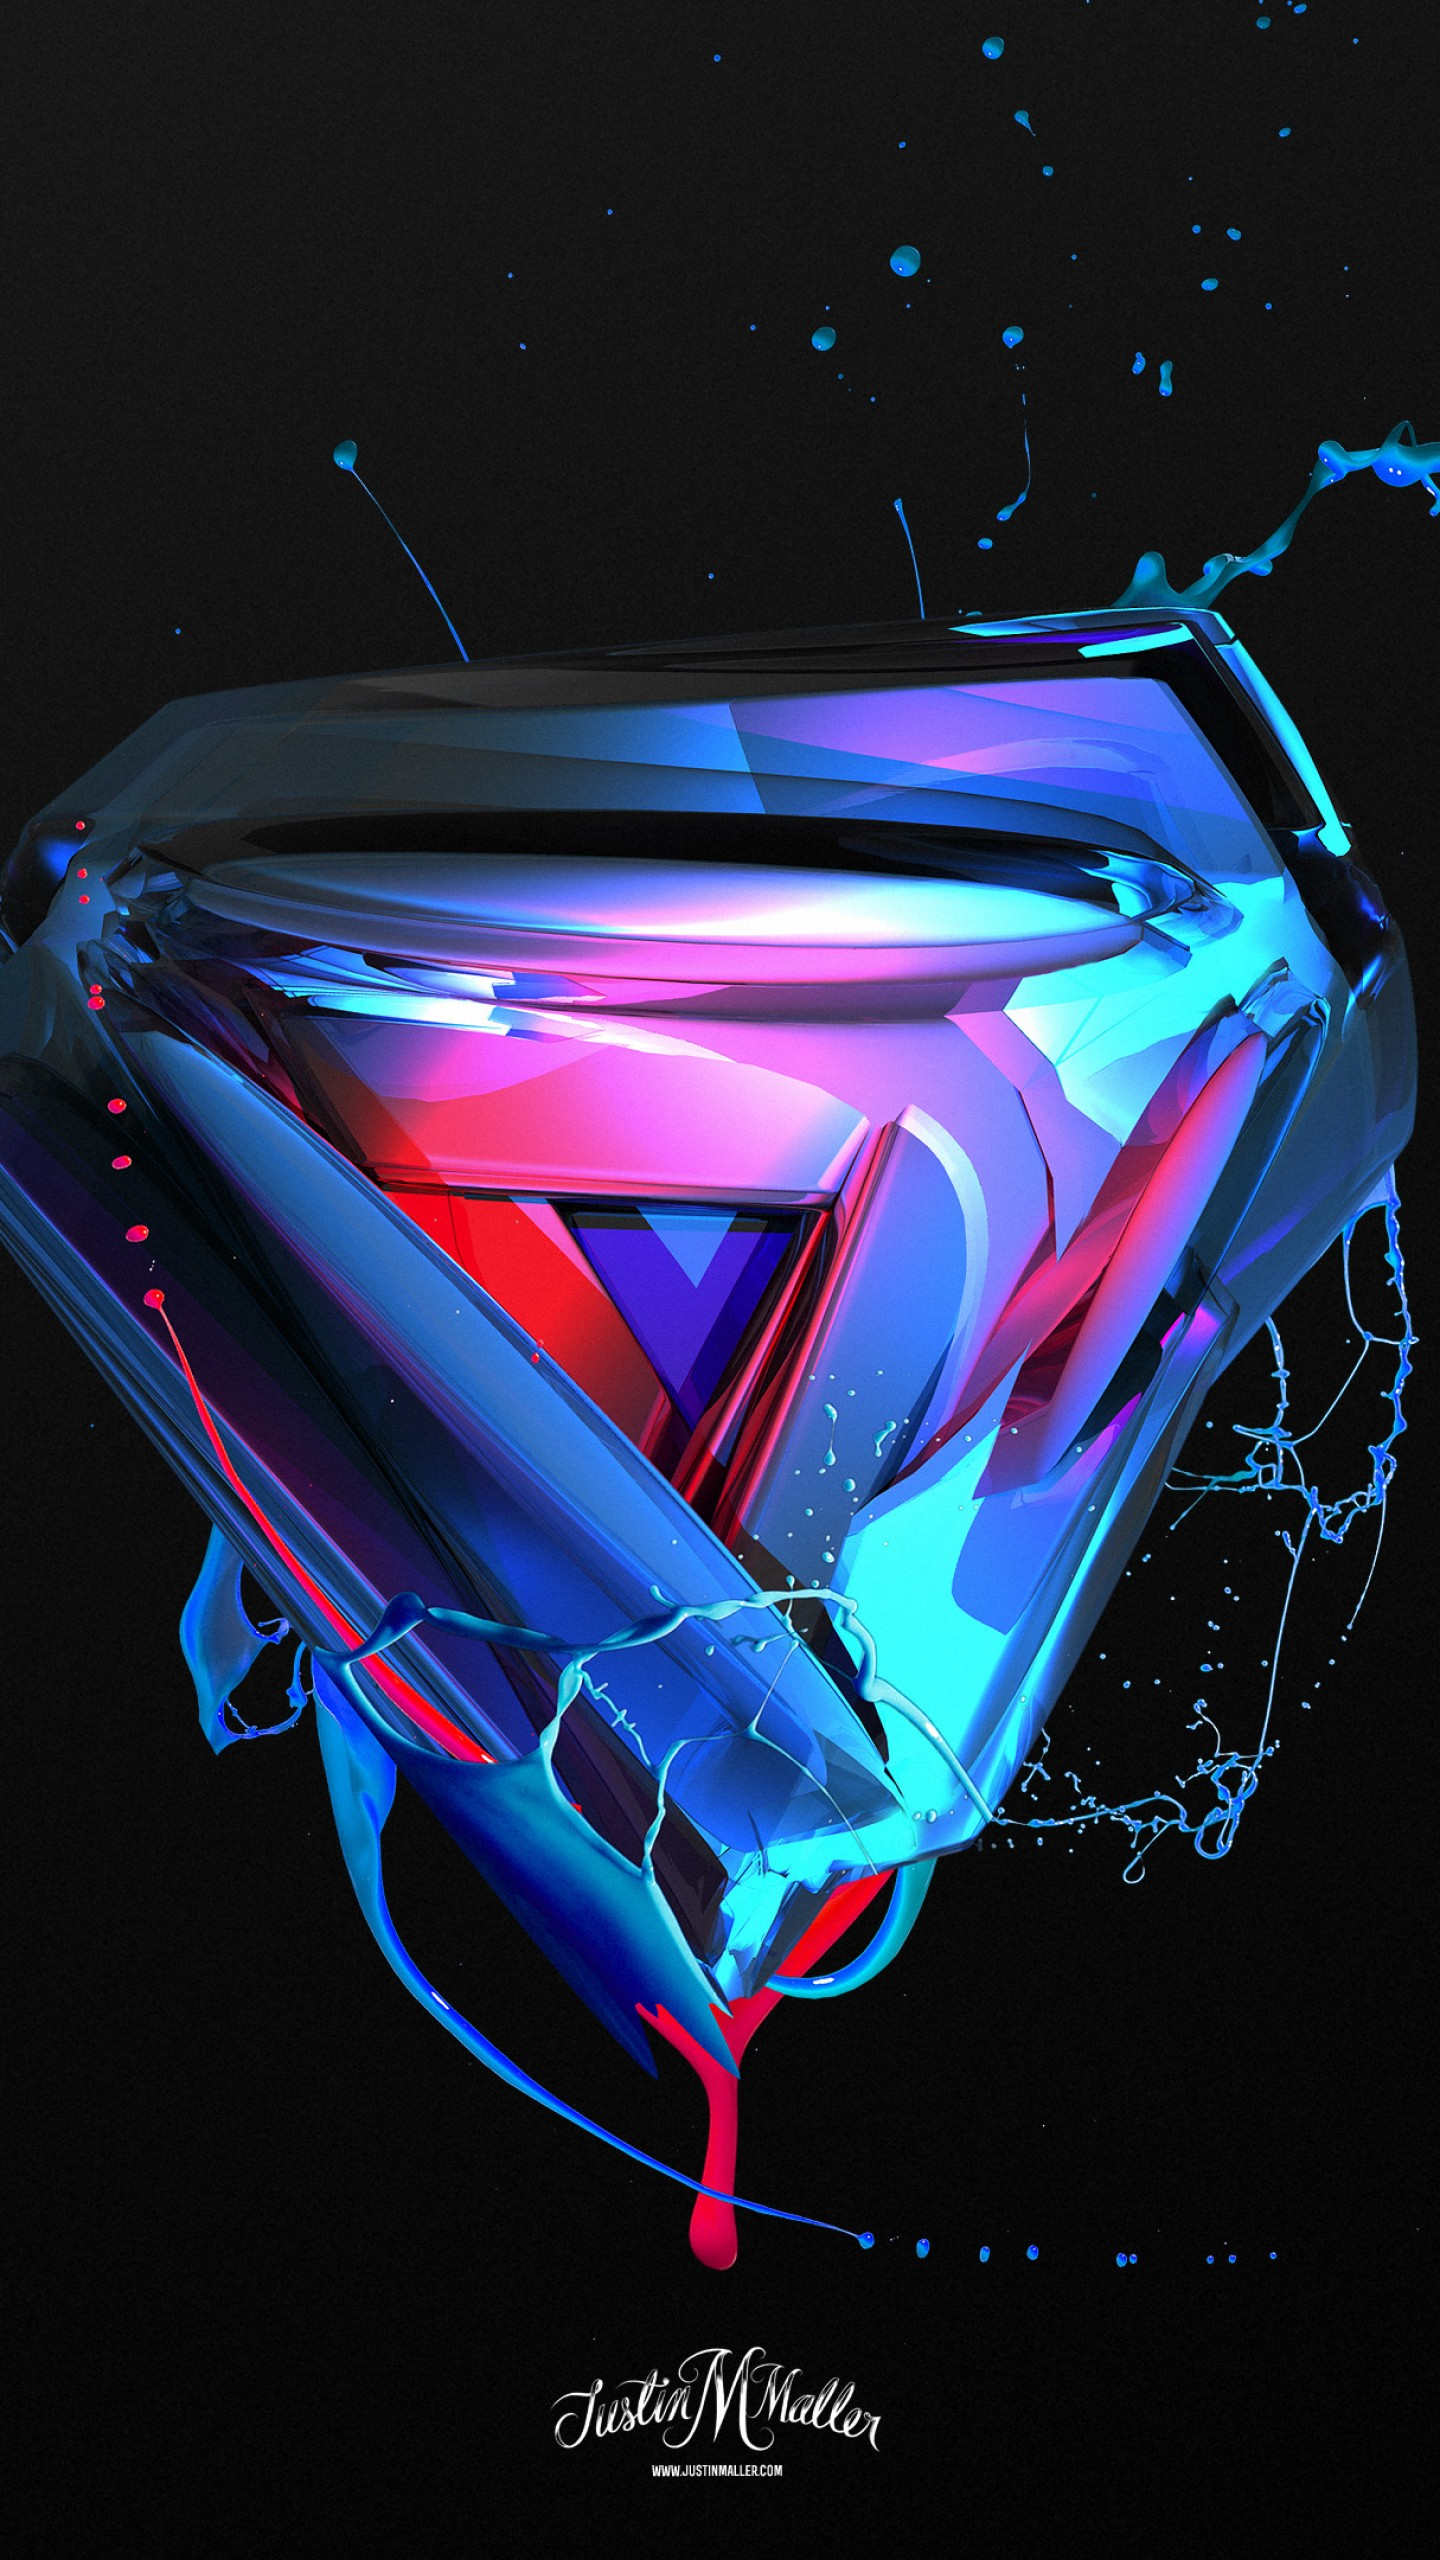 Wallpaper 3D, triangle, abstract, shapes, 4k, Abstract #17744